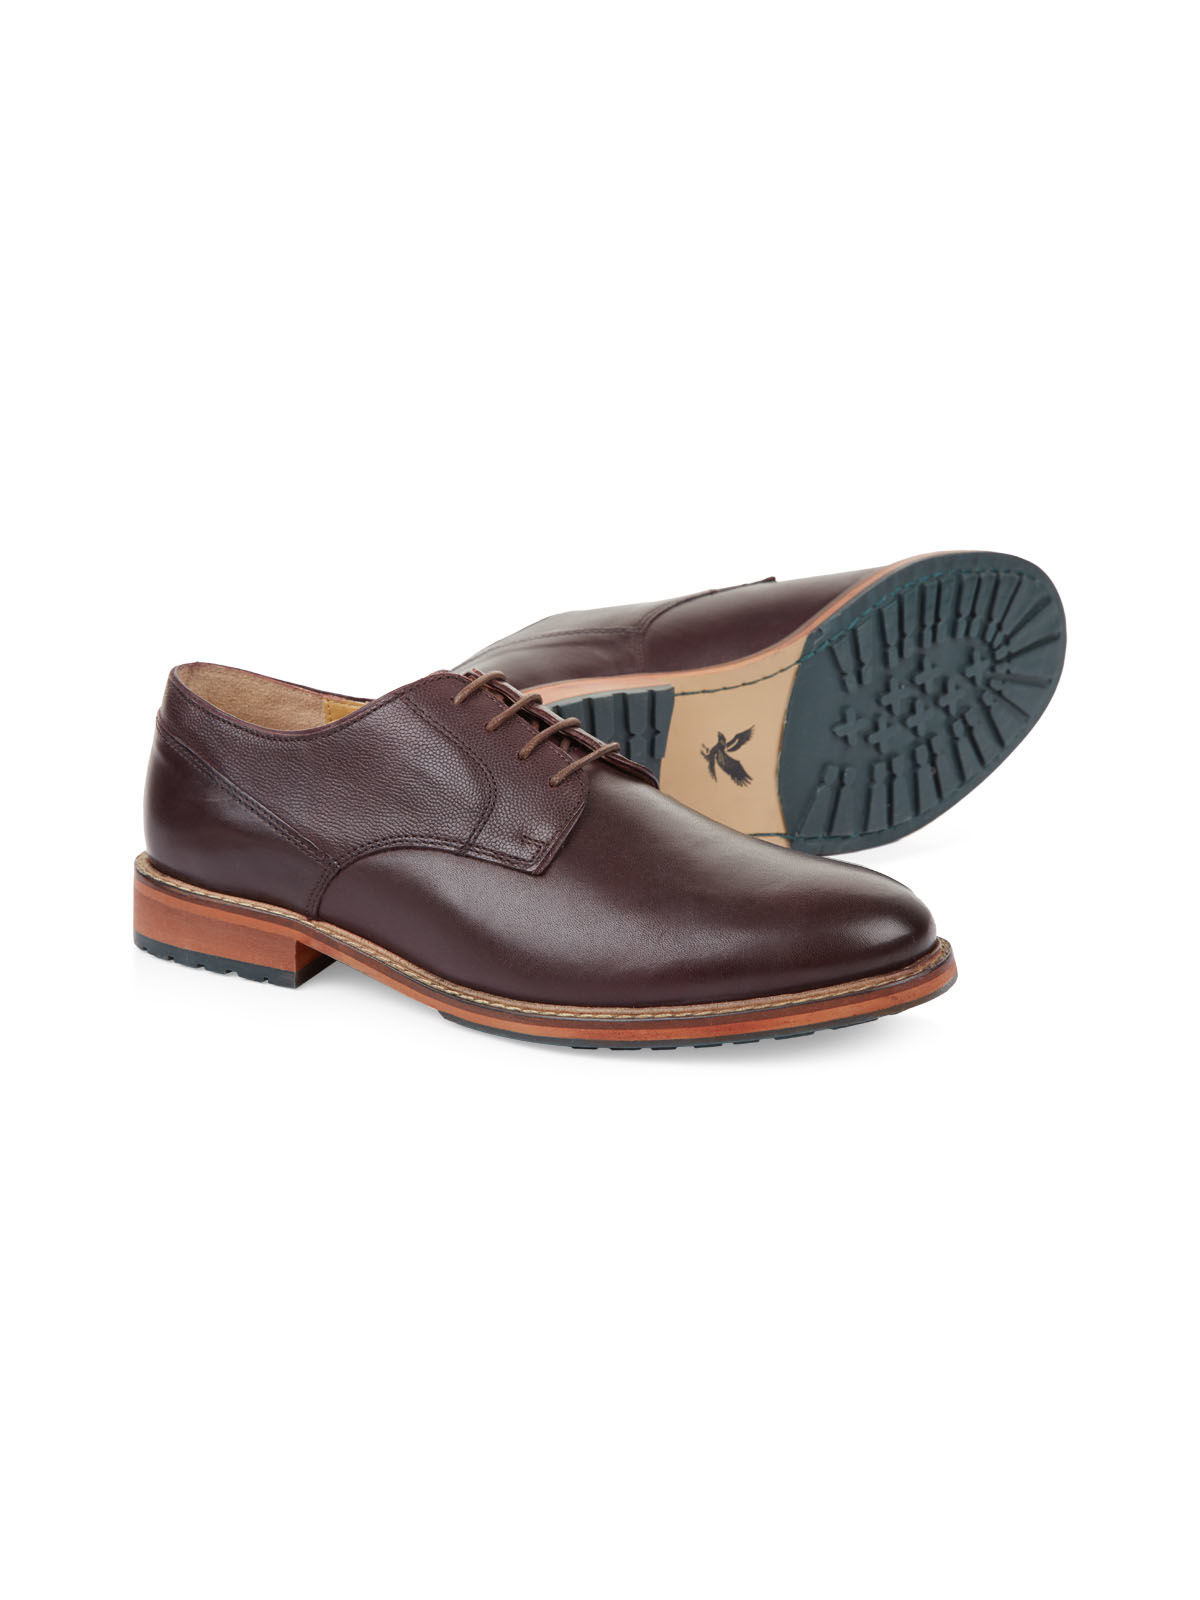 Lyle and Scott BURGUNDY Keltie Leather Brogues